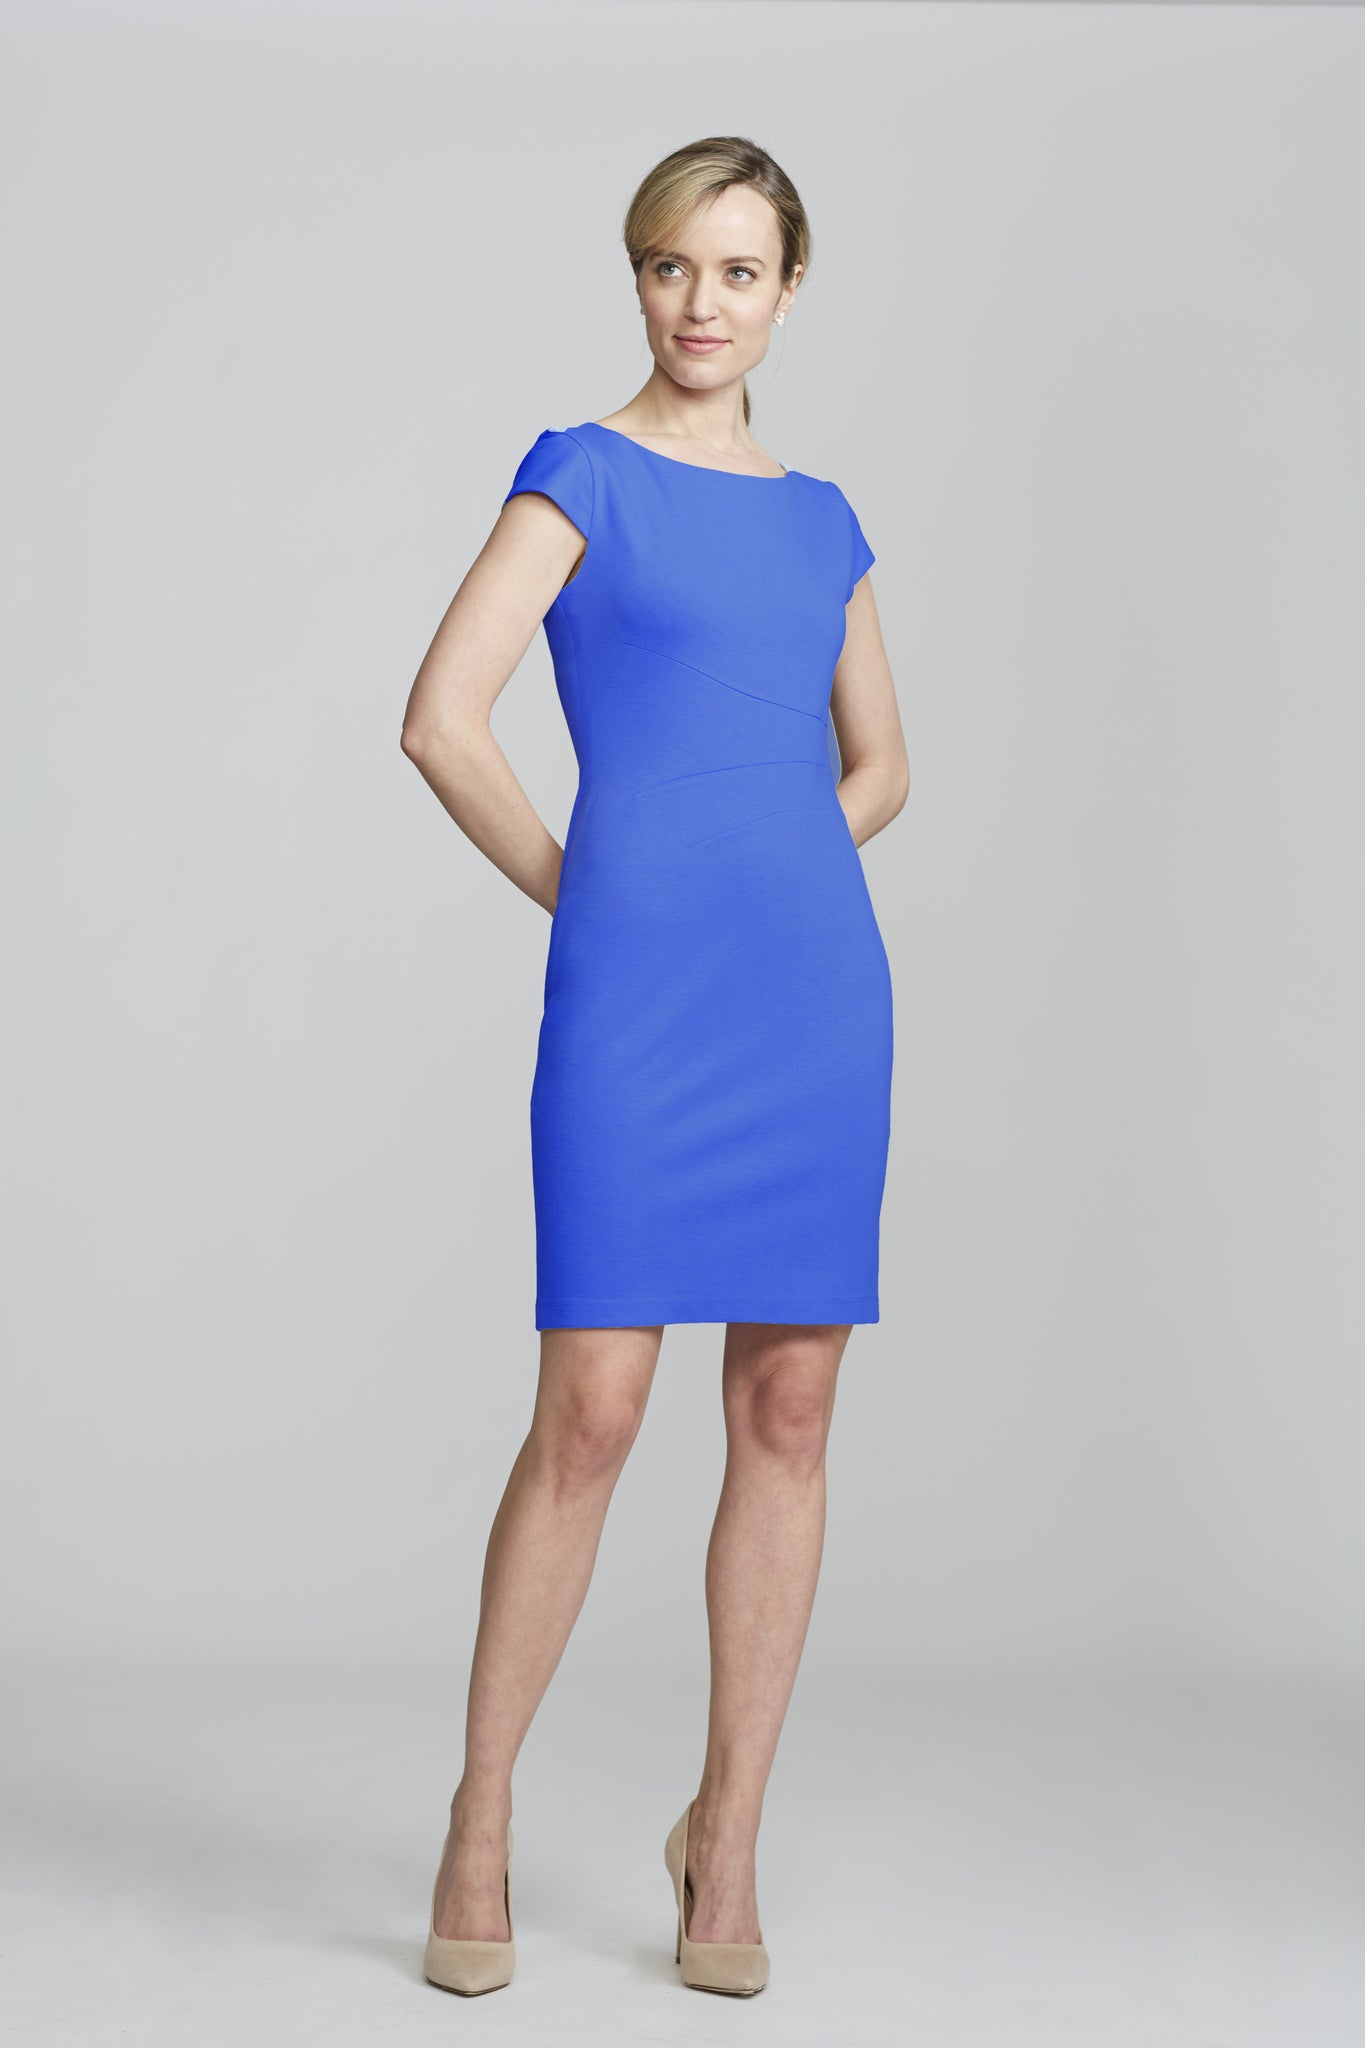 Verana Dress - Lapis Blue